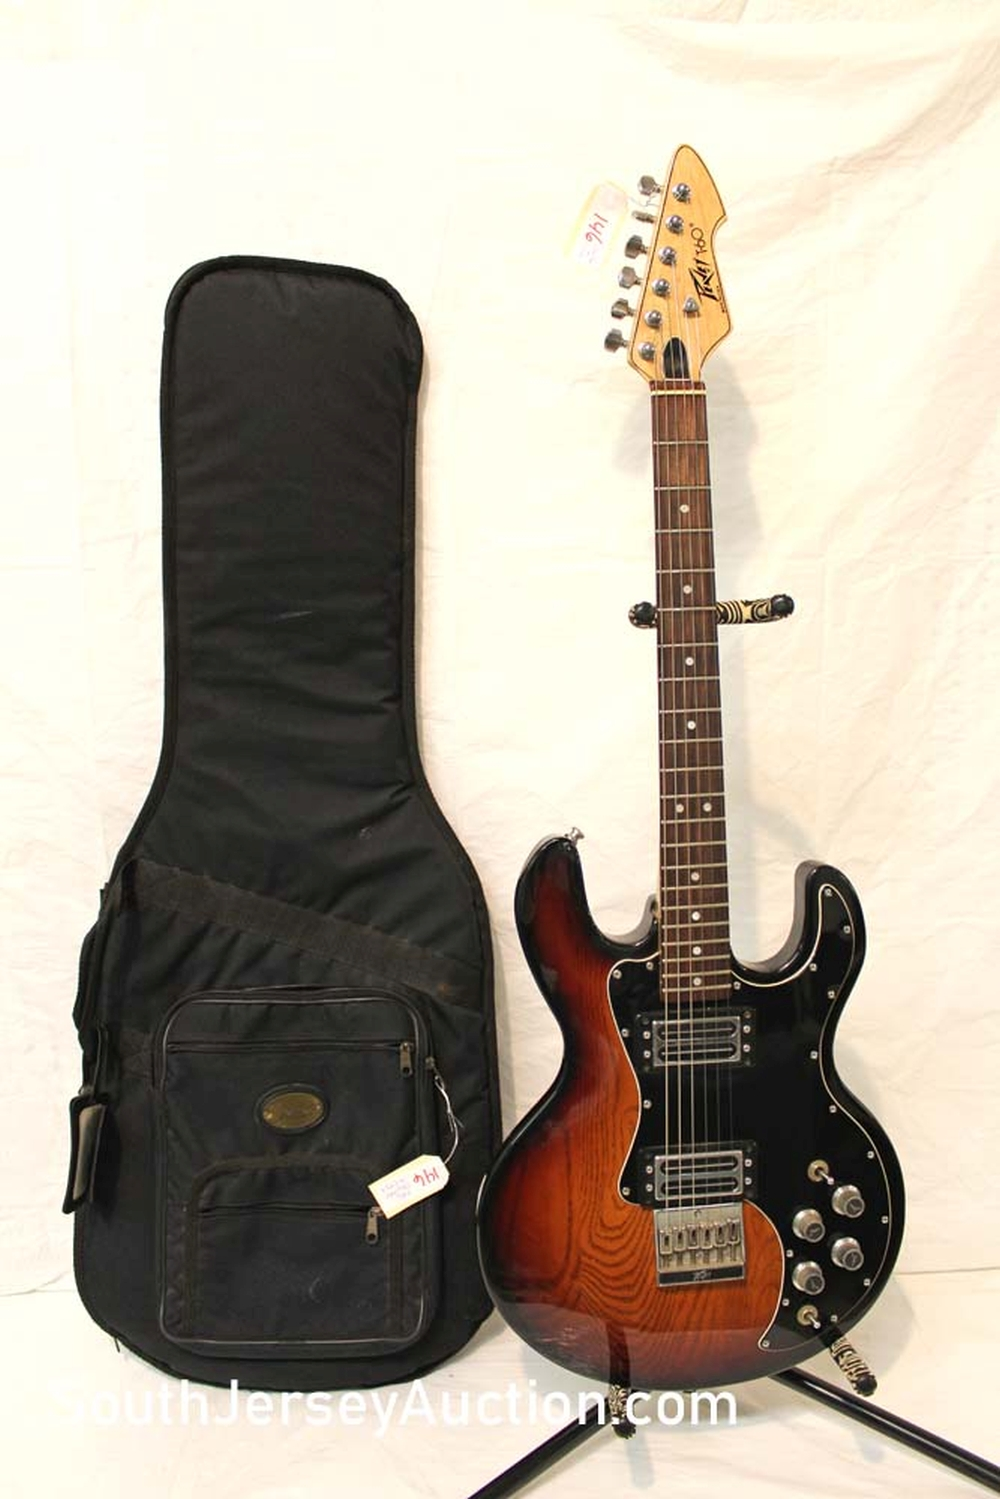 1981 PEVEY model T60 guitar, tobacco sunburst color, s/n 01403778, with Fender multi pocket gig soft bag, with strap, all original, very good condition